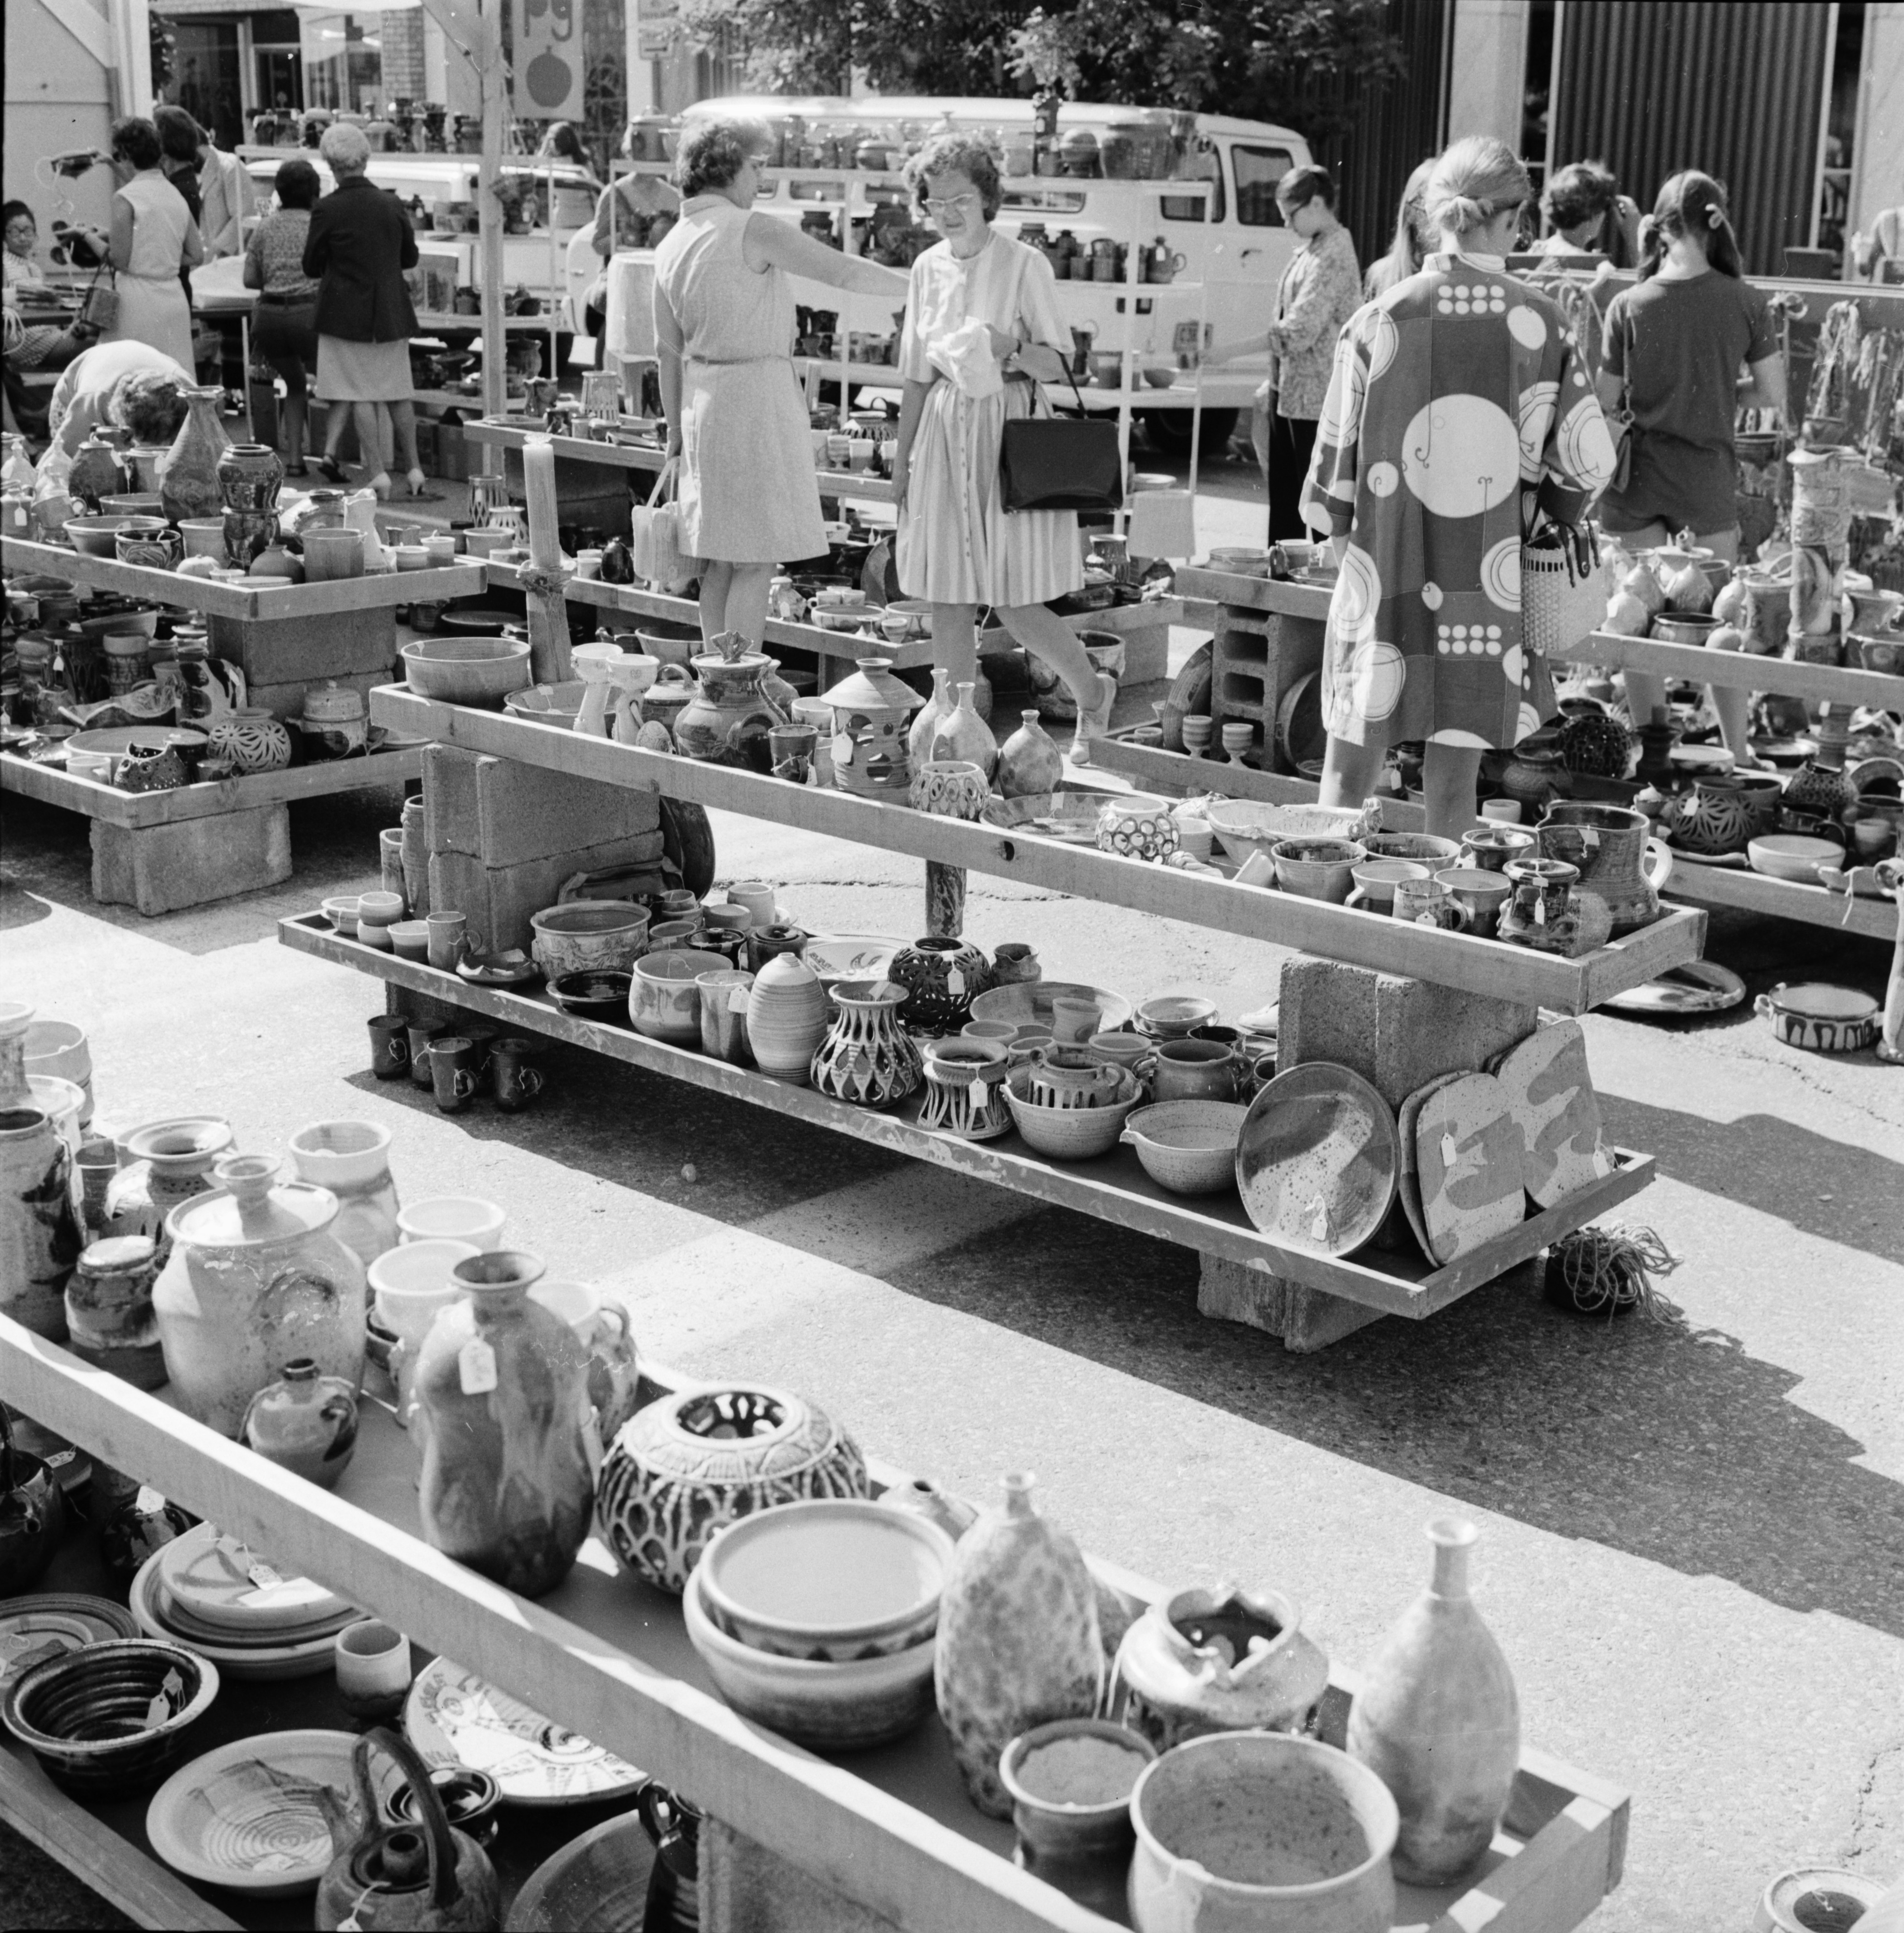 Pottery at the Ann Arbor Street Art Fair, July 1971 image